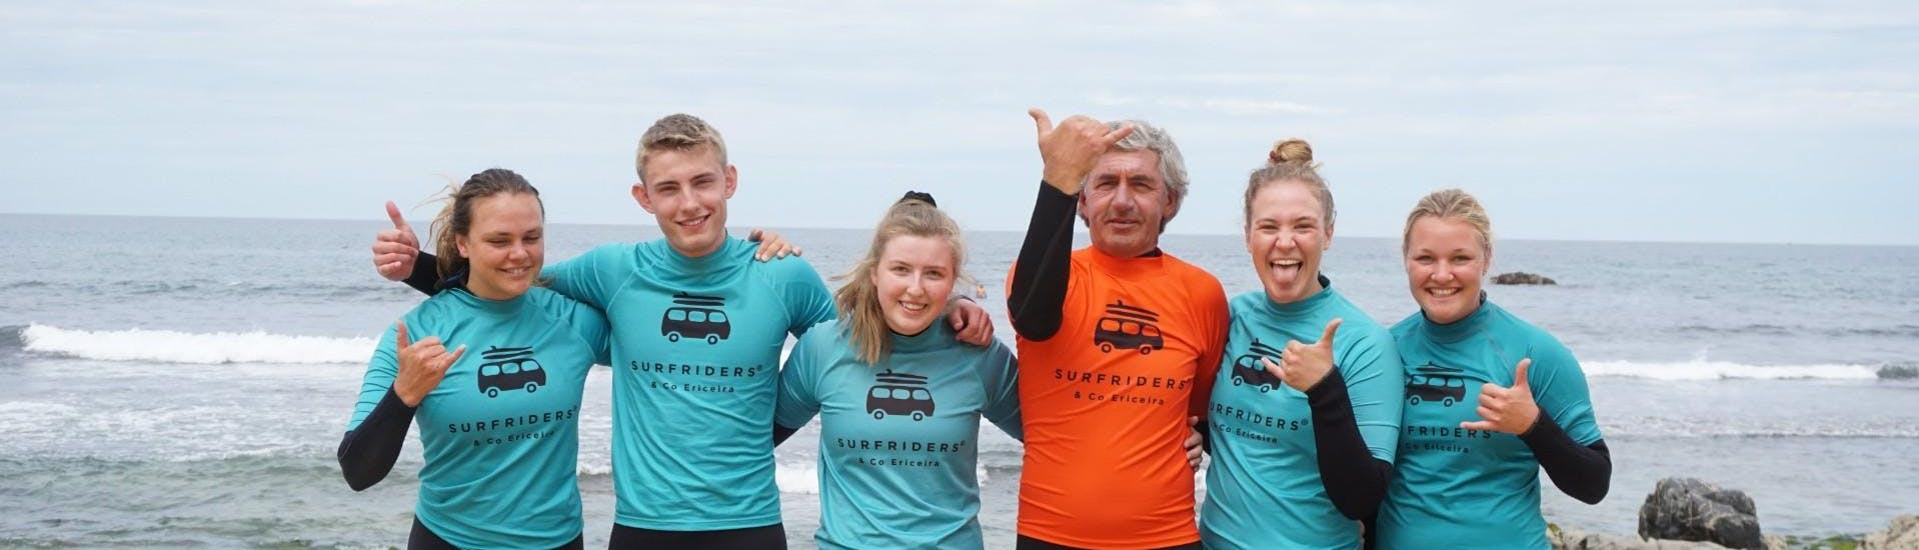 surfing-lessons-for-beginners---adults--ericeira-surf-riders-ericeira-hero